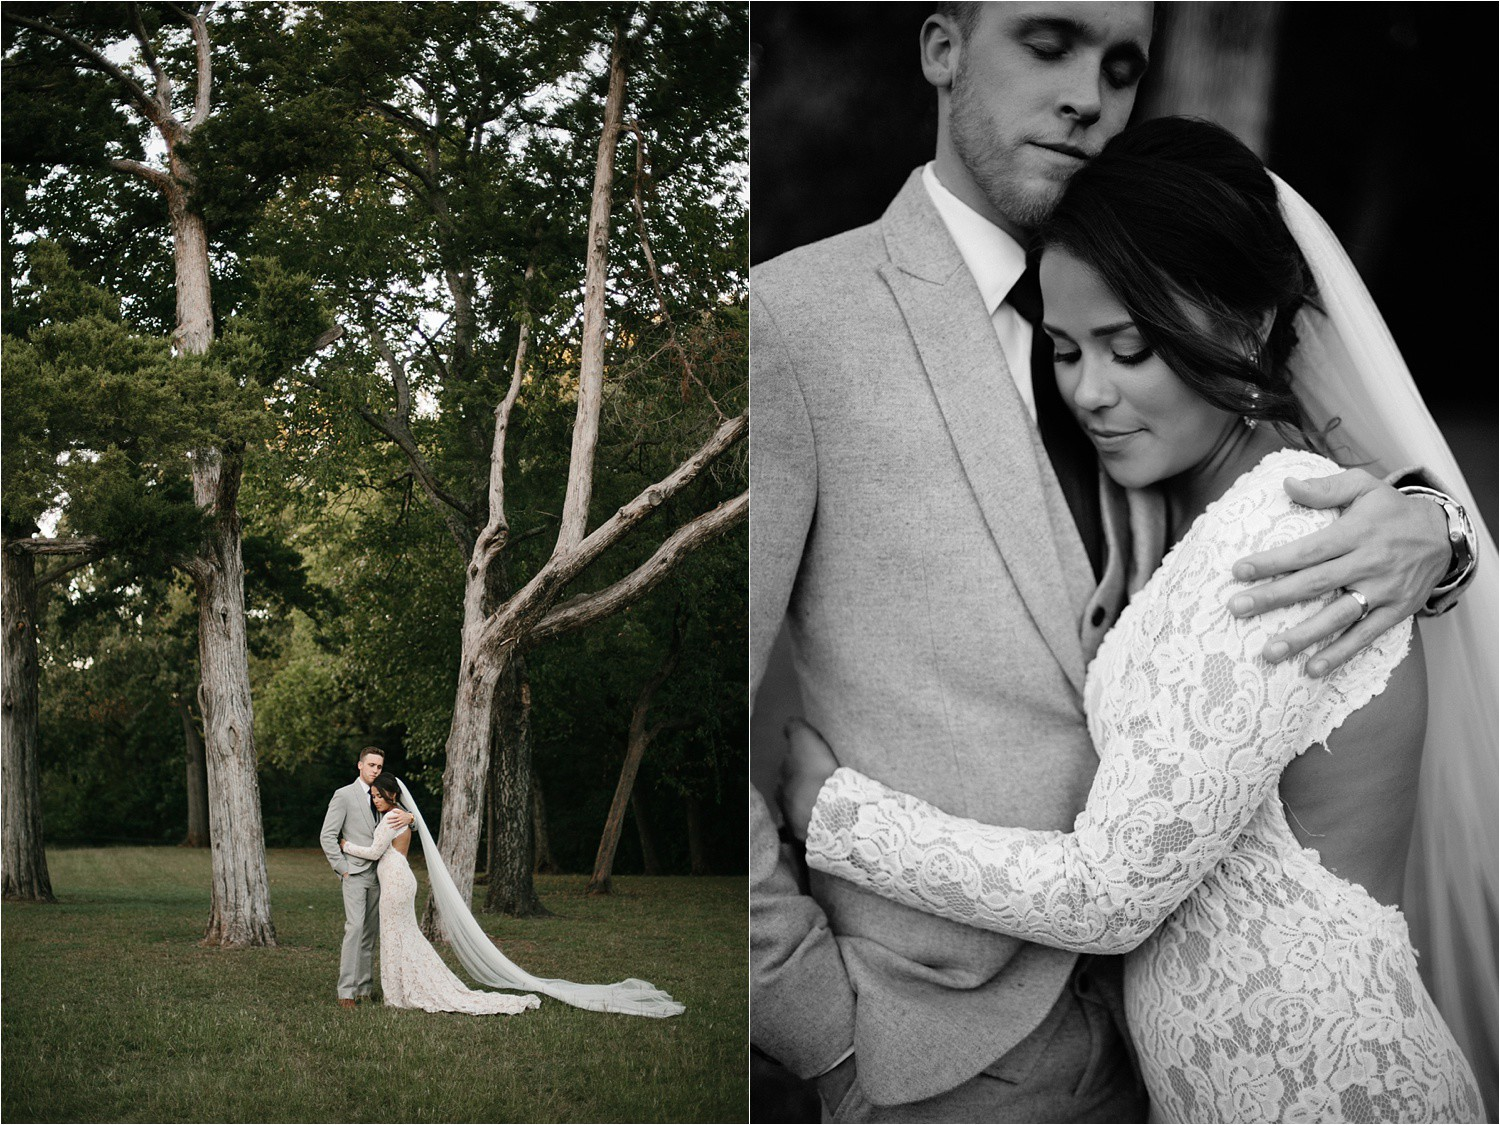 mallory-tyler-__-an-intimate-after-session-at-grapevine-lake-by-north-texas-wedding-photographer-rachel-meagan-photography-_-41